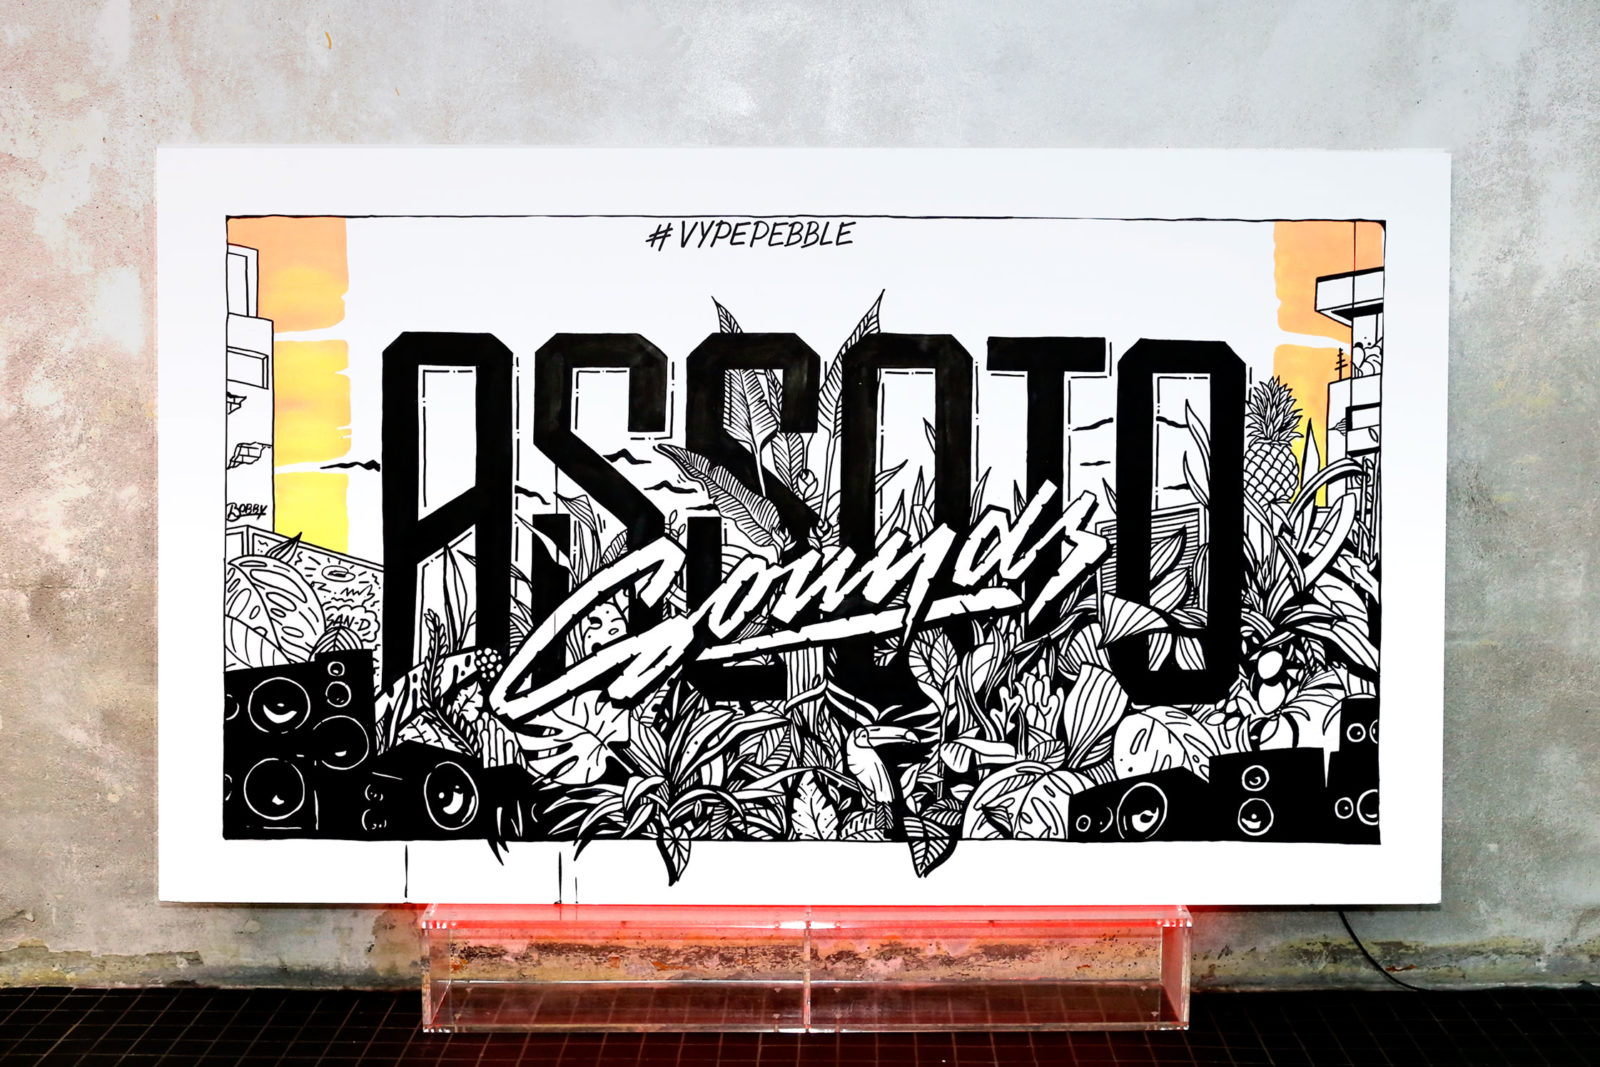 (EN) Canvas Assoto Sounds, 2016: Live painting during one of the legendary Hip Hop parties at Hamburg's Mojo Club